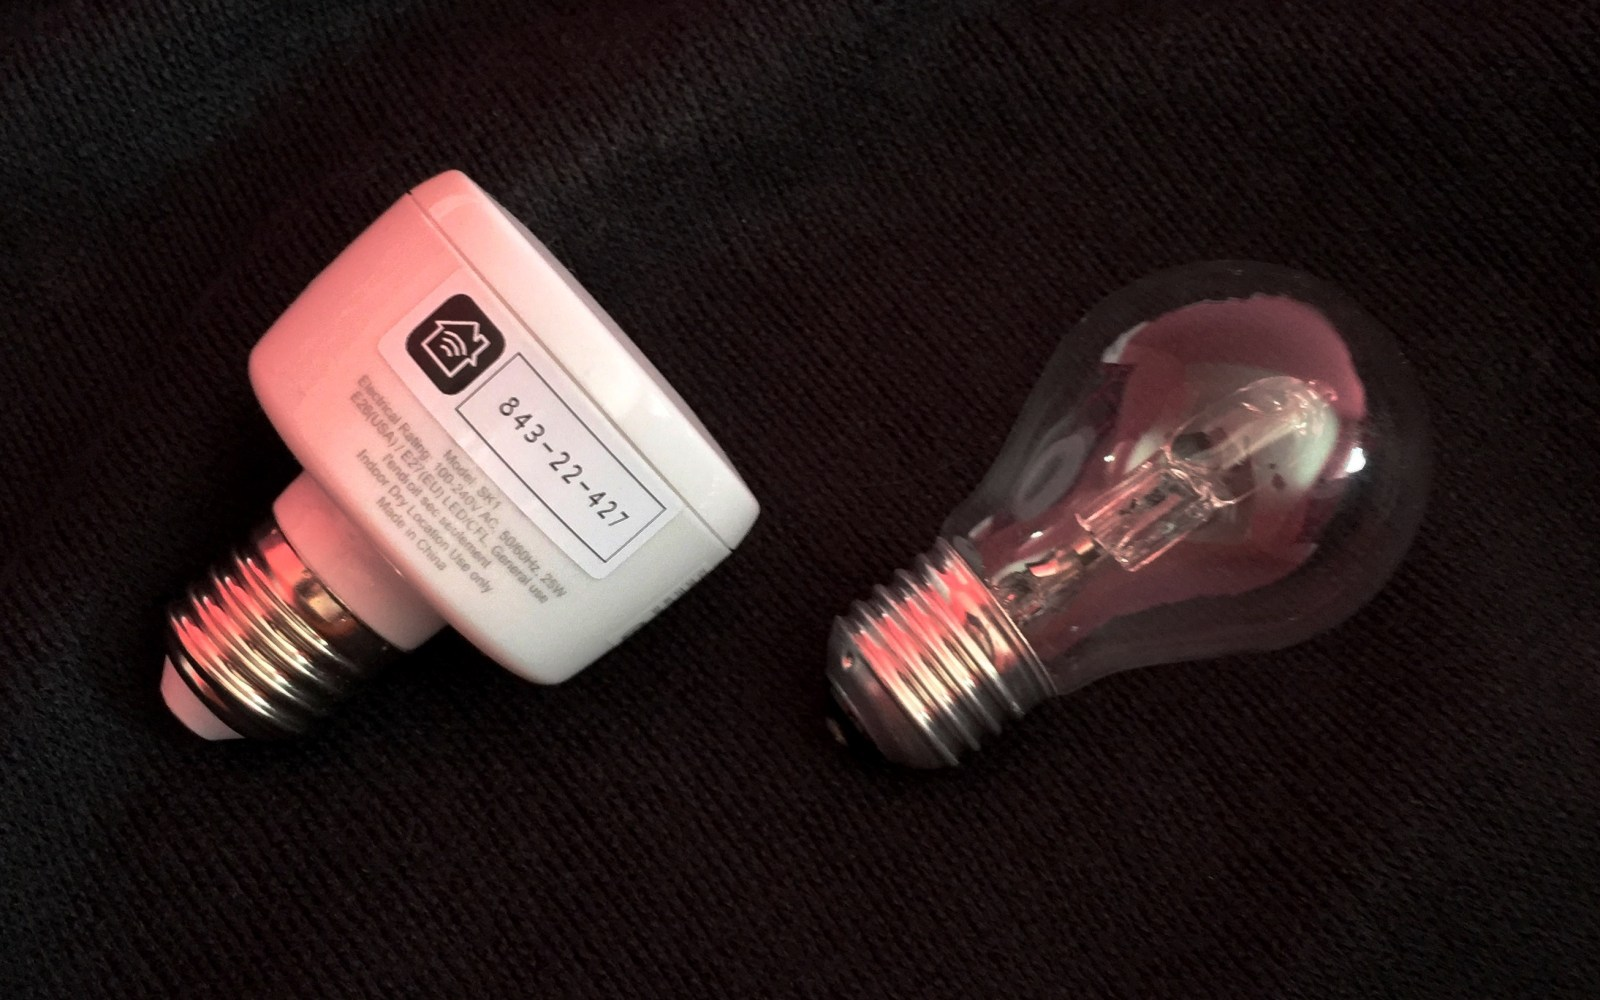 Review: Koogeek Smart Socket adapts your existing bulbs to work with HomeKit & Siri voice control